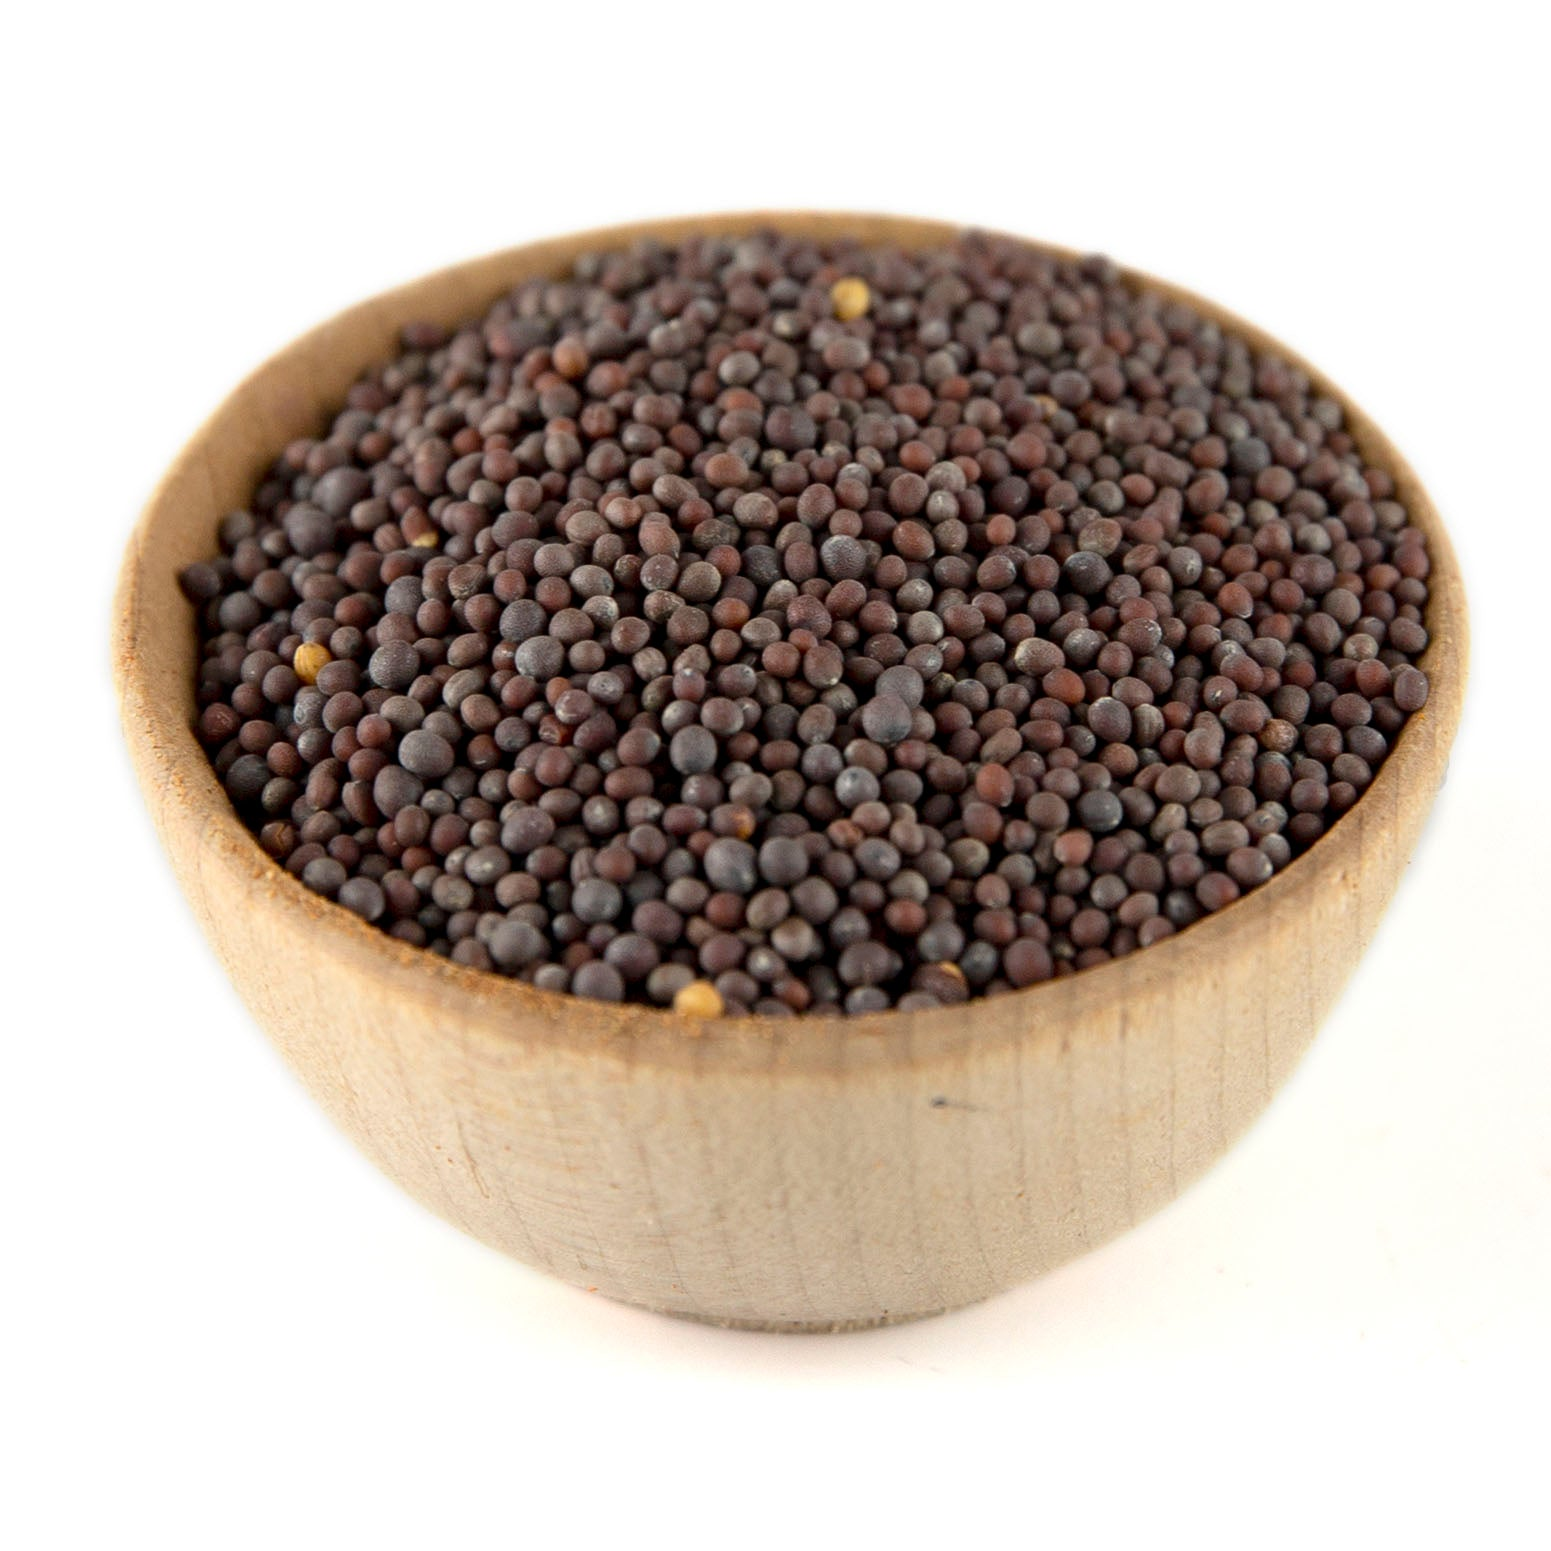 Mustard Seed-Brown-Whole - Spices - Red Stick Spice Company